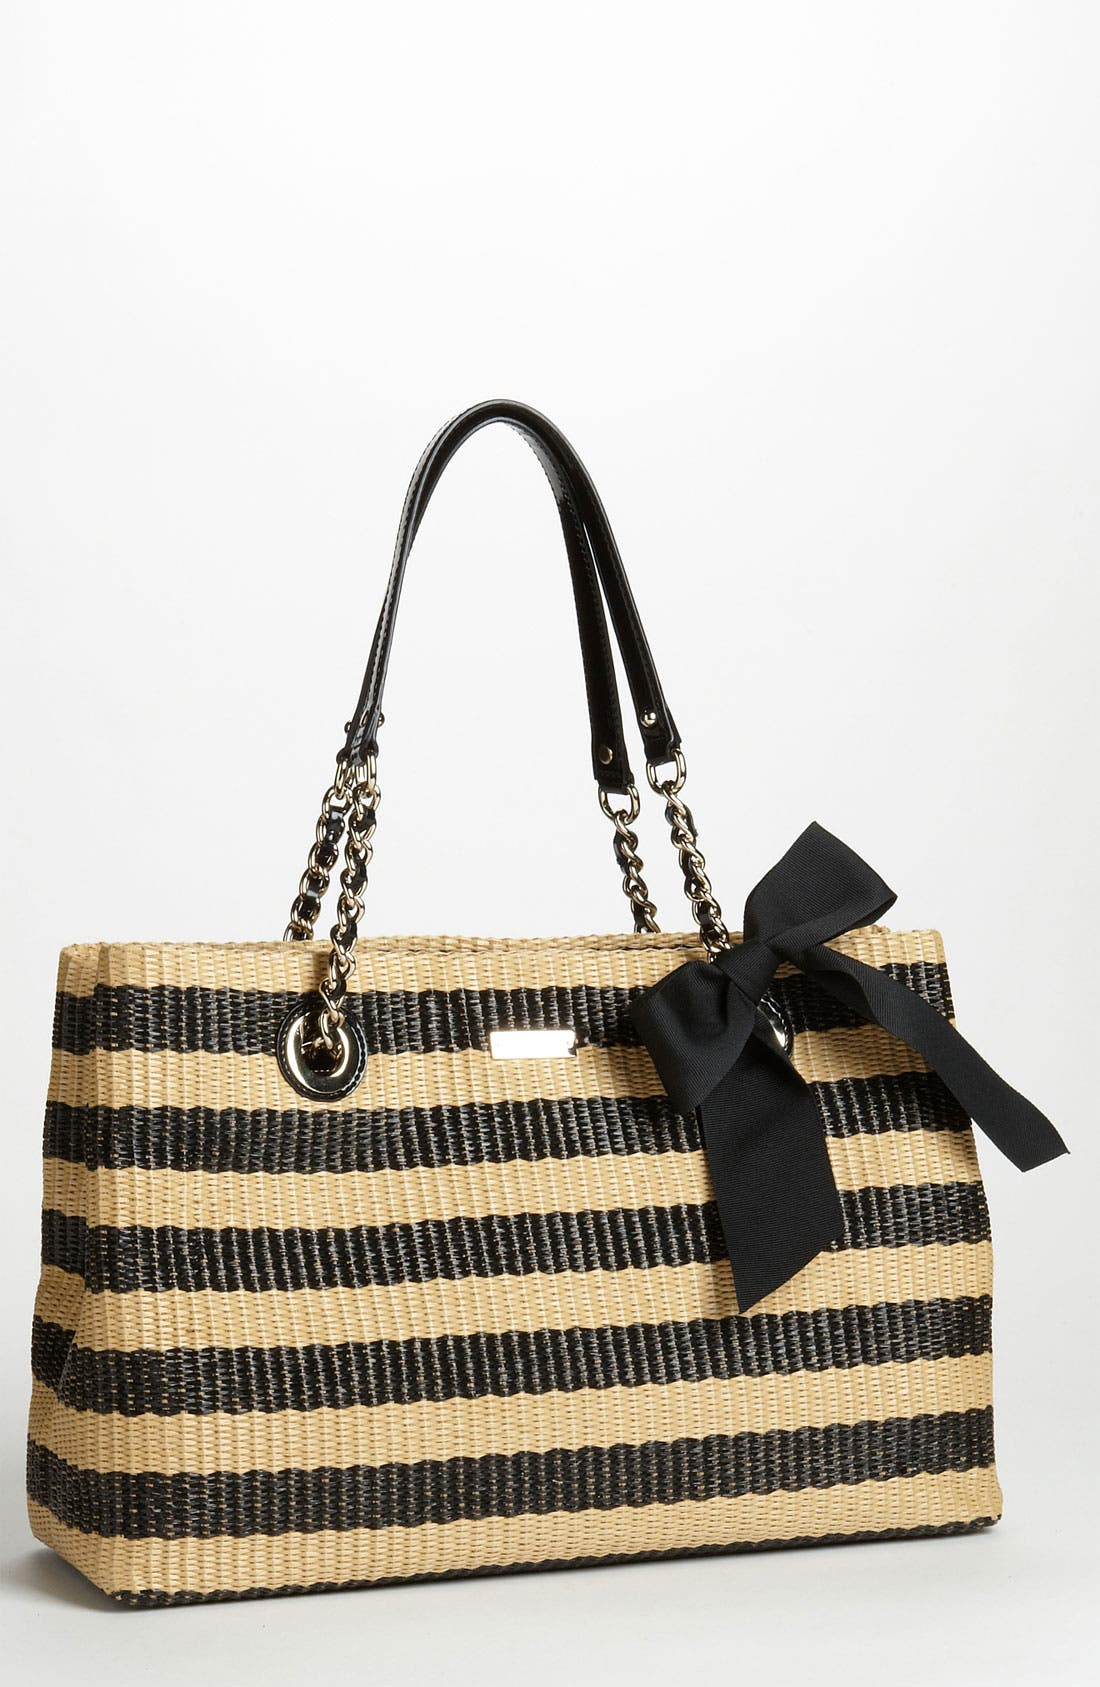 Alternate Image 1 Selected - kate spade new york 'pacific heights - zippered helena' tote (Nordstrom Exclusive)